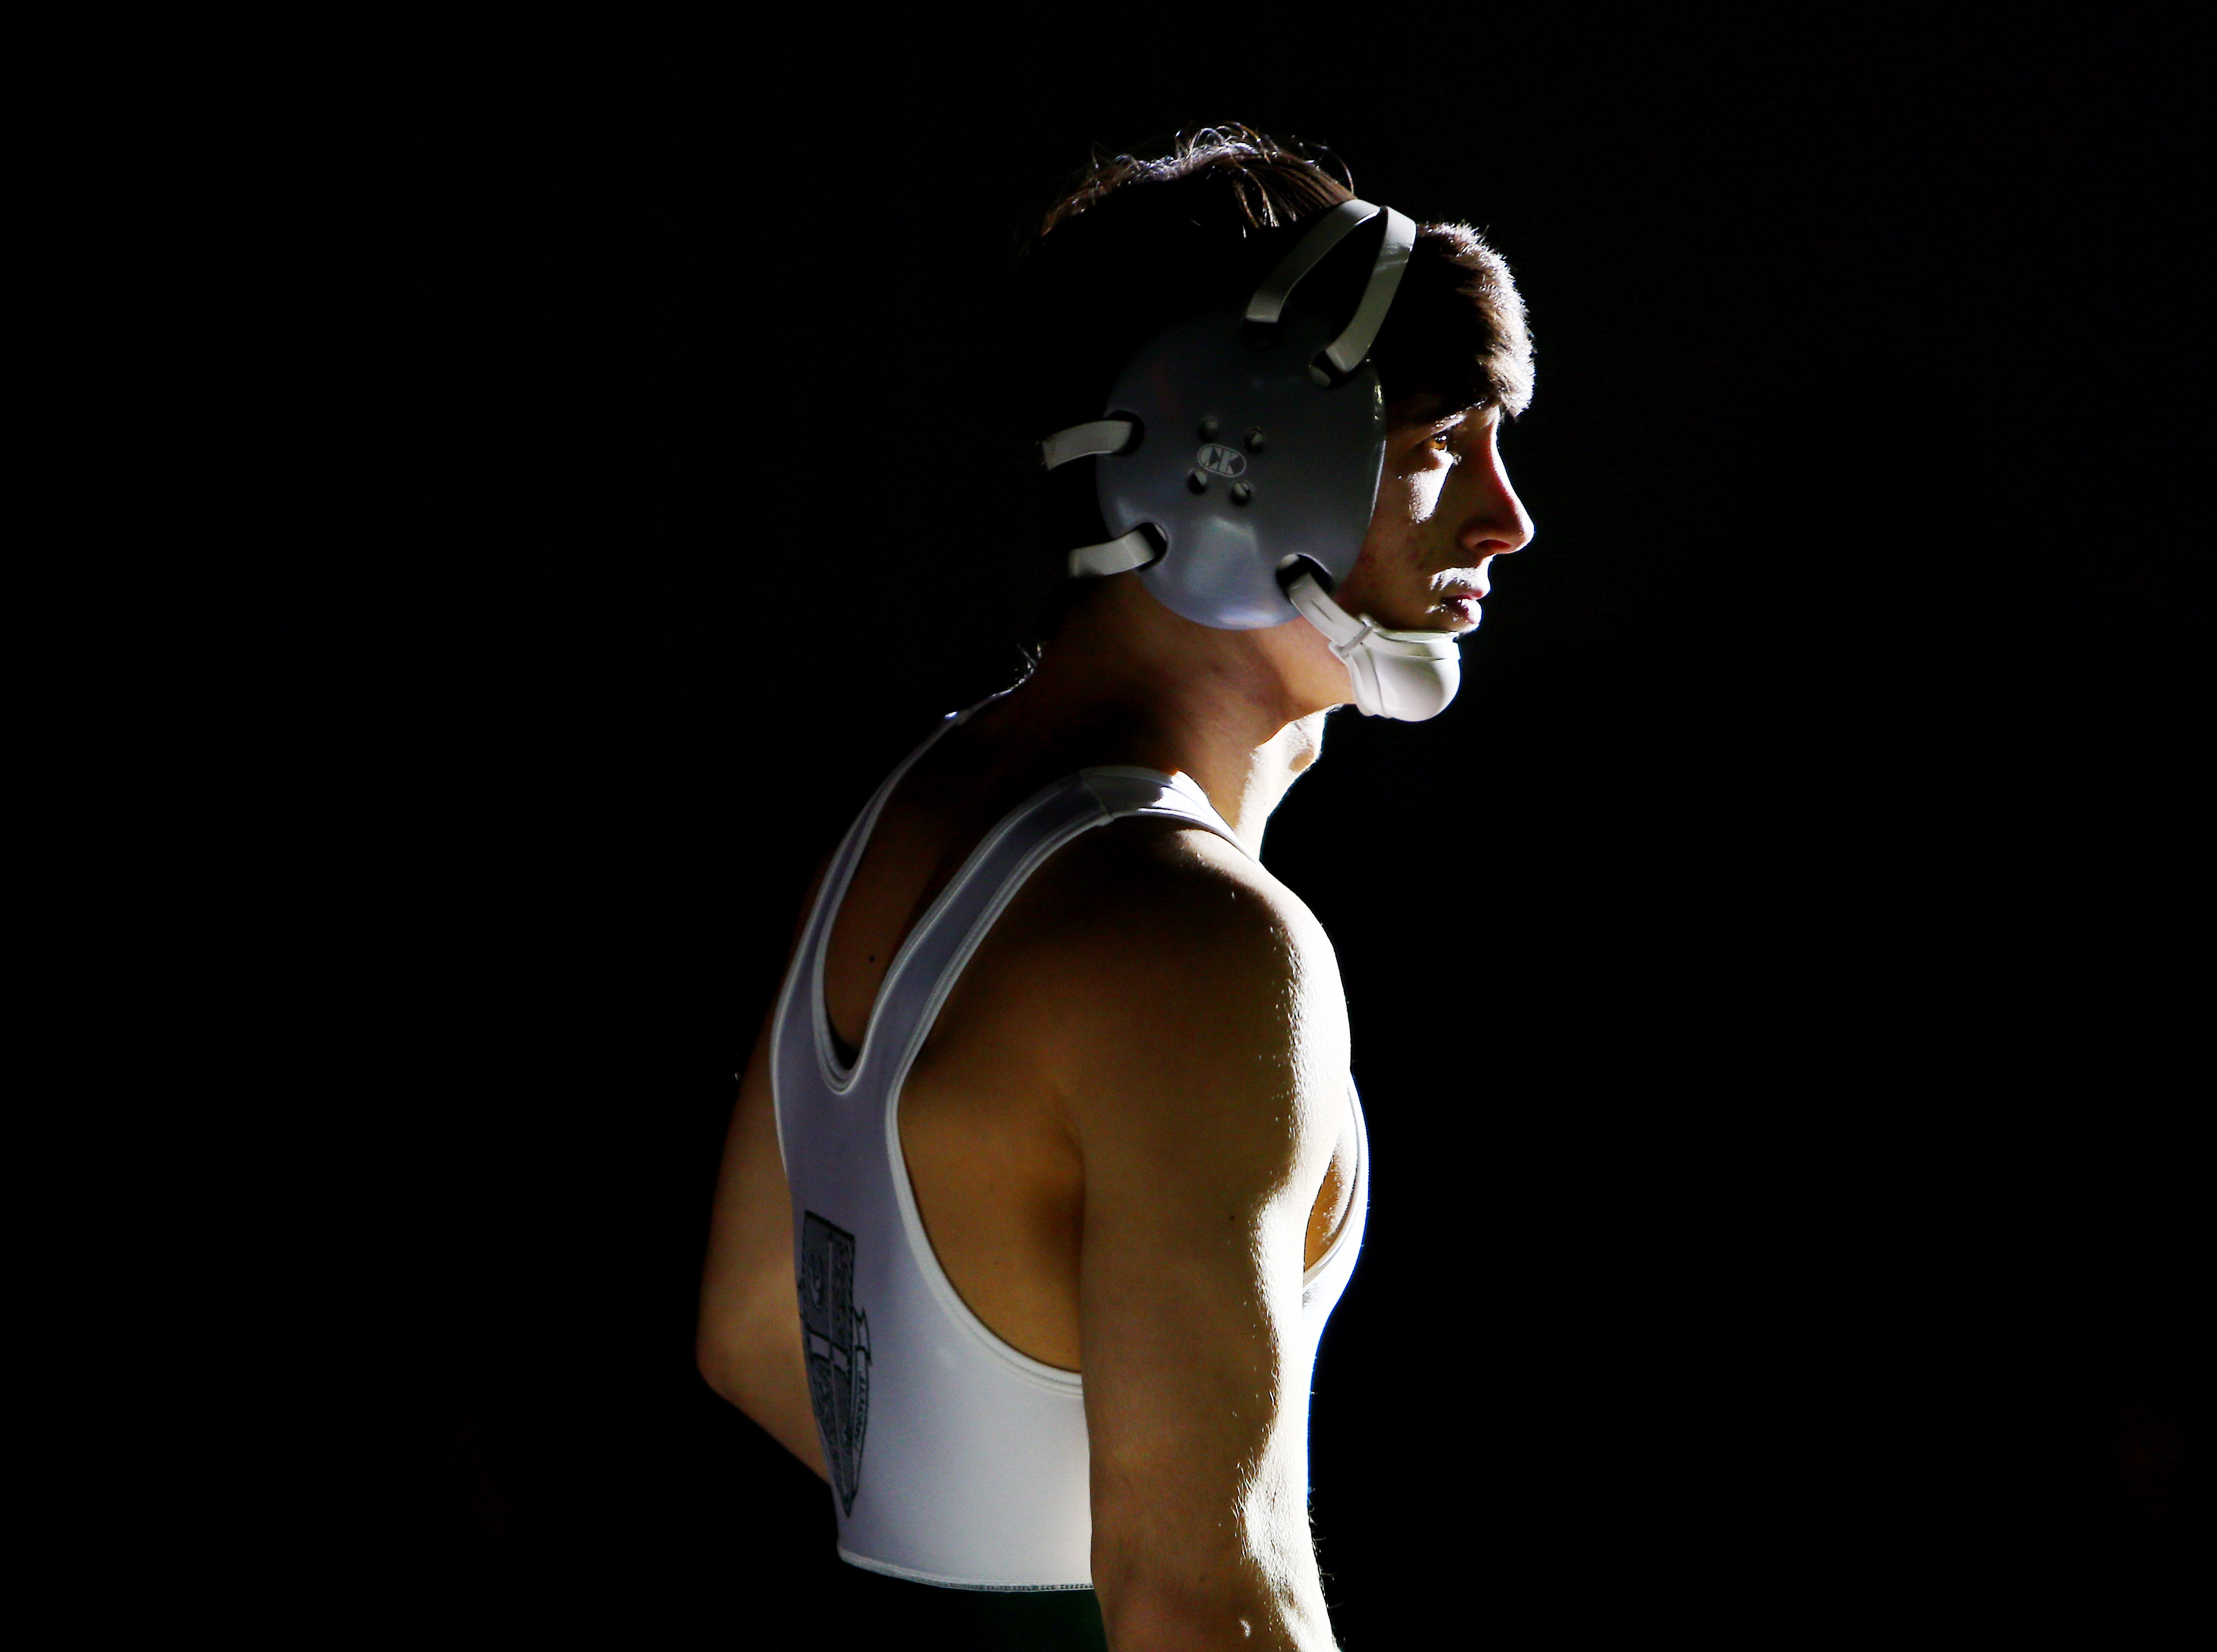 Patrick Glory of Delbarton before taking on Domenic Difrancescantonio of Hanover Park during the Region 3, 126 lb. wrestling final at West Orange High School. February 24, 2018. West Orange, NJ.